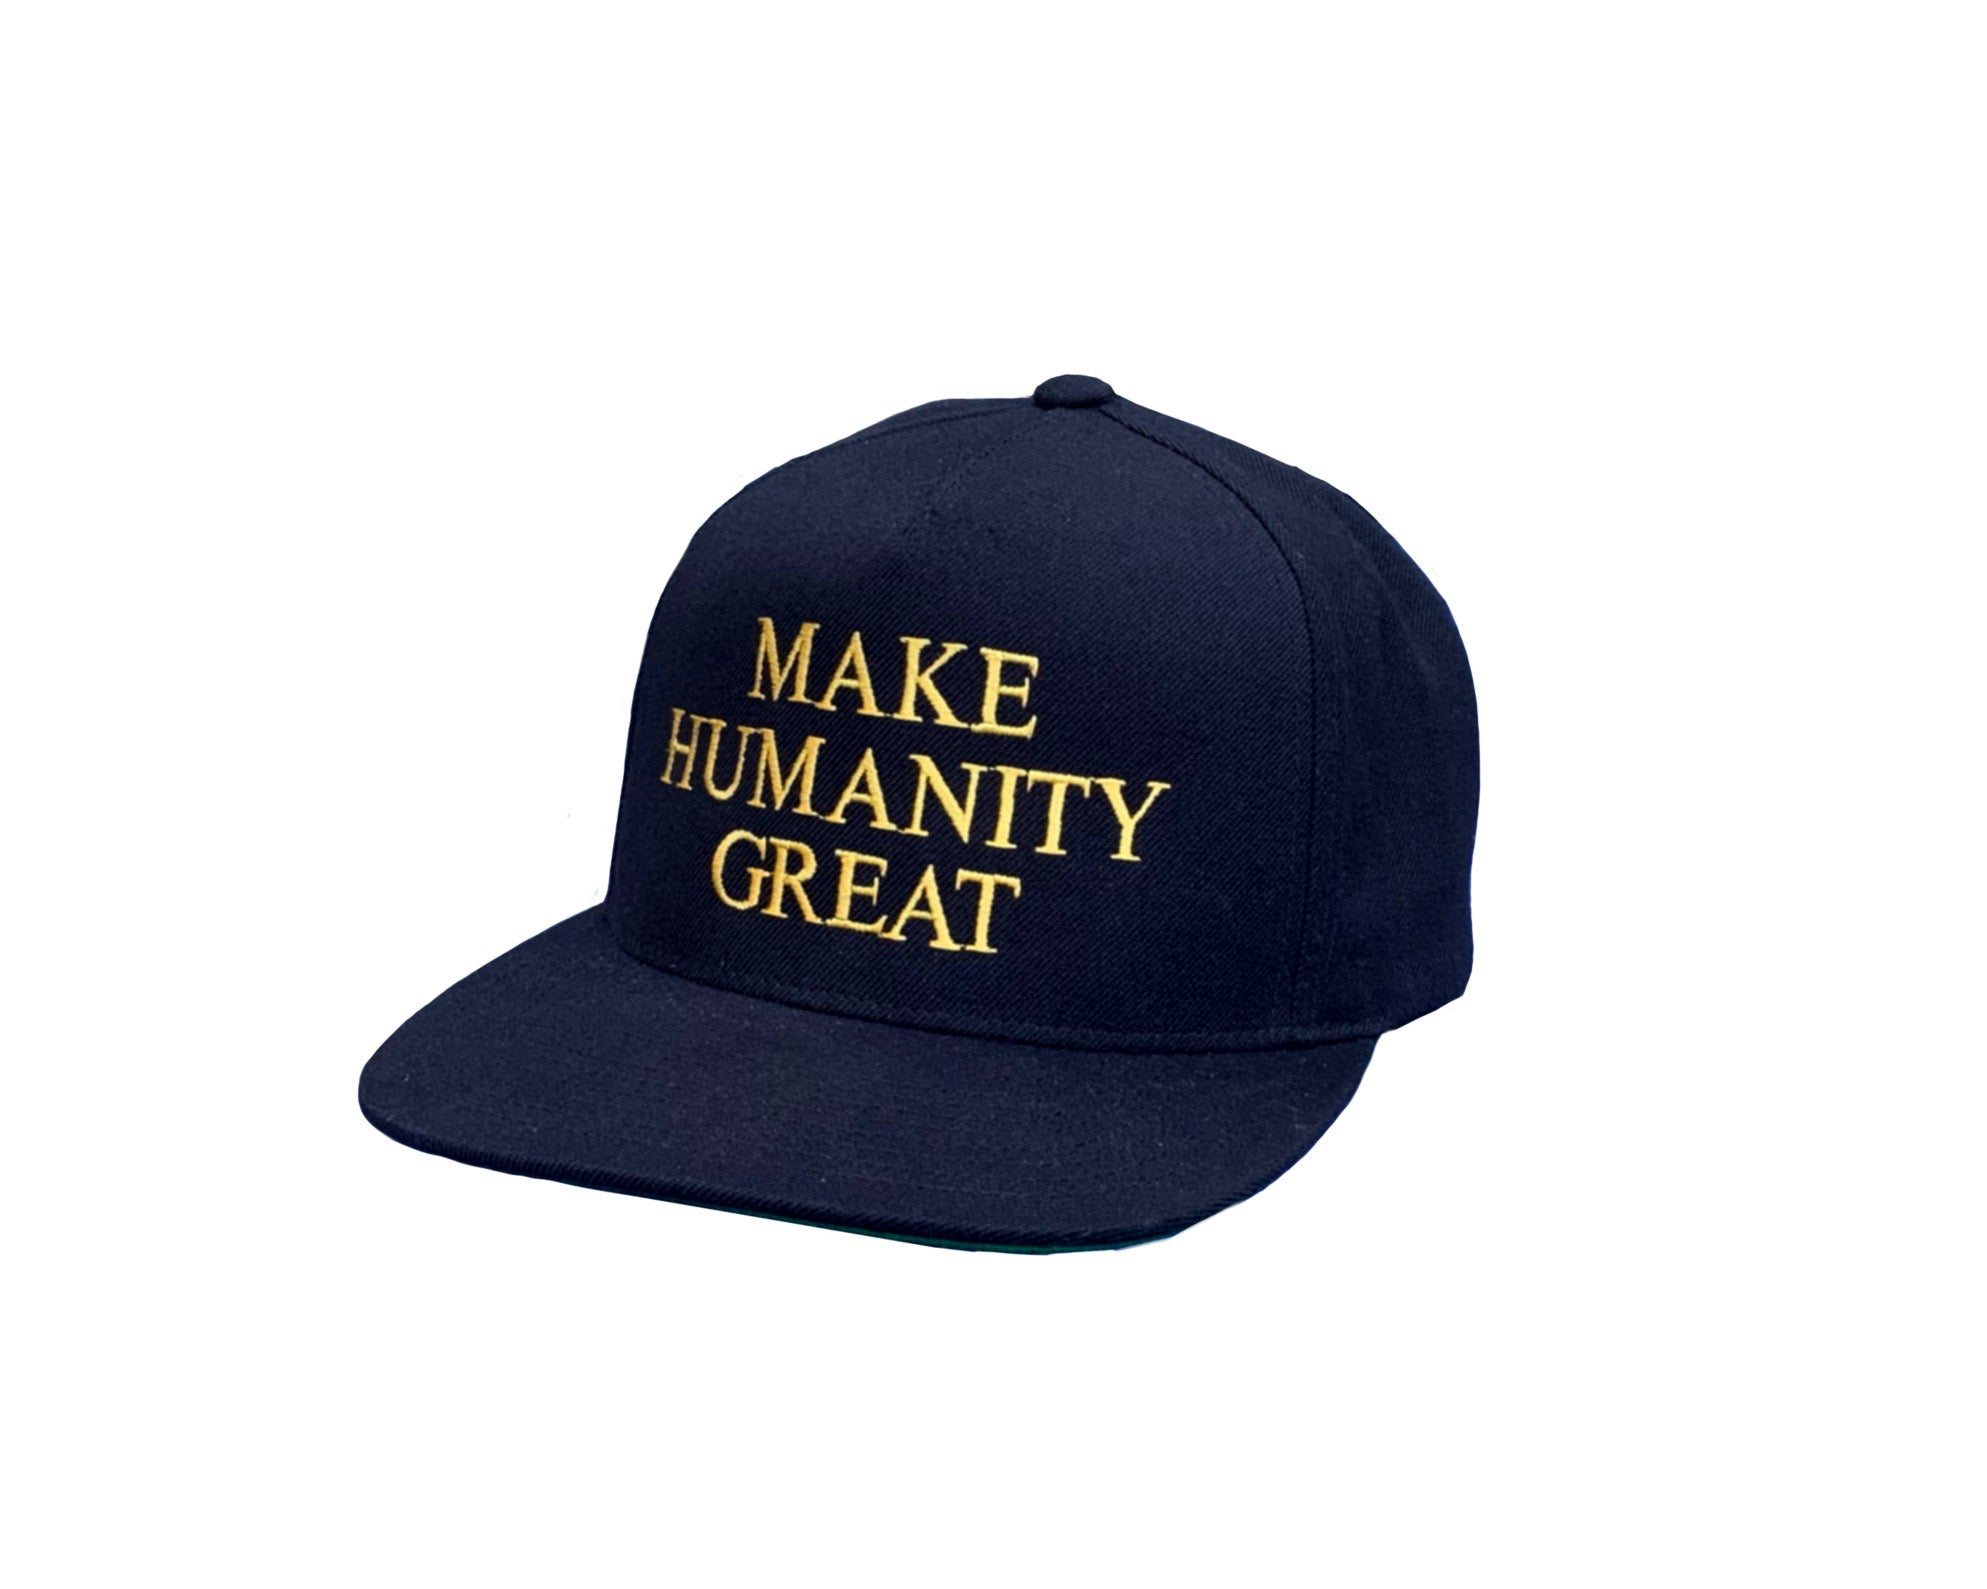 MAKE HUMANITY GREAT HAT